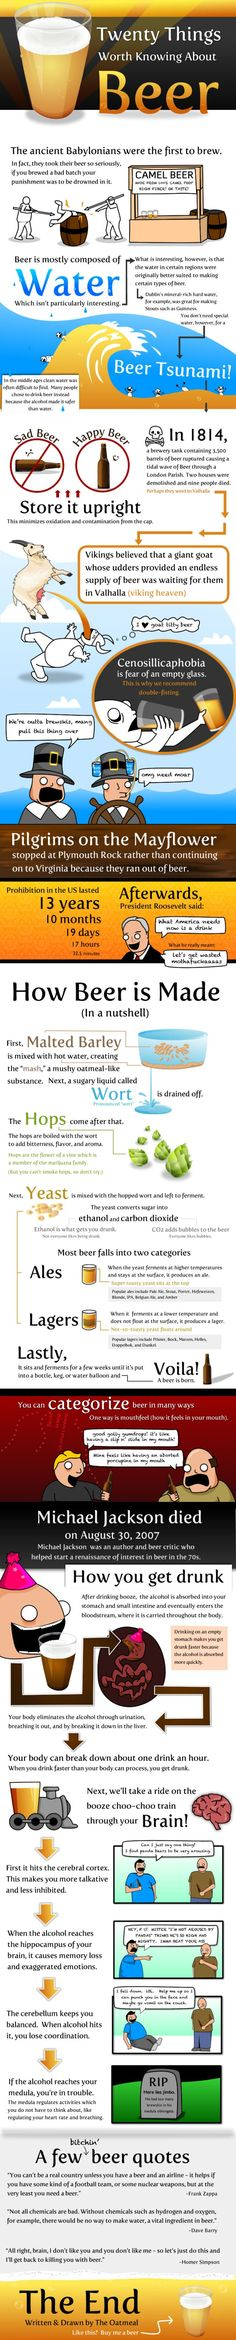 20 Things Worth Knowing About Beer and other infographics for beer